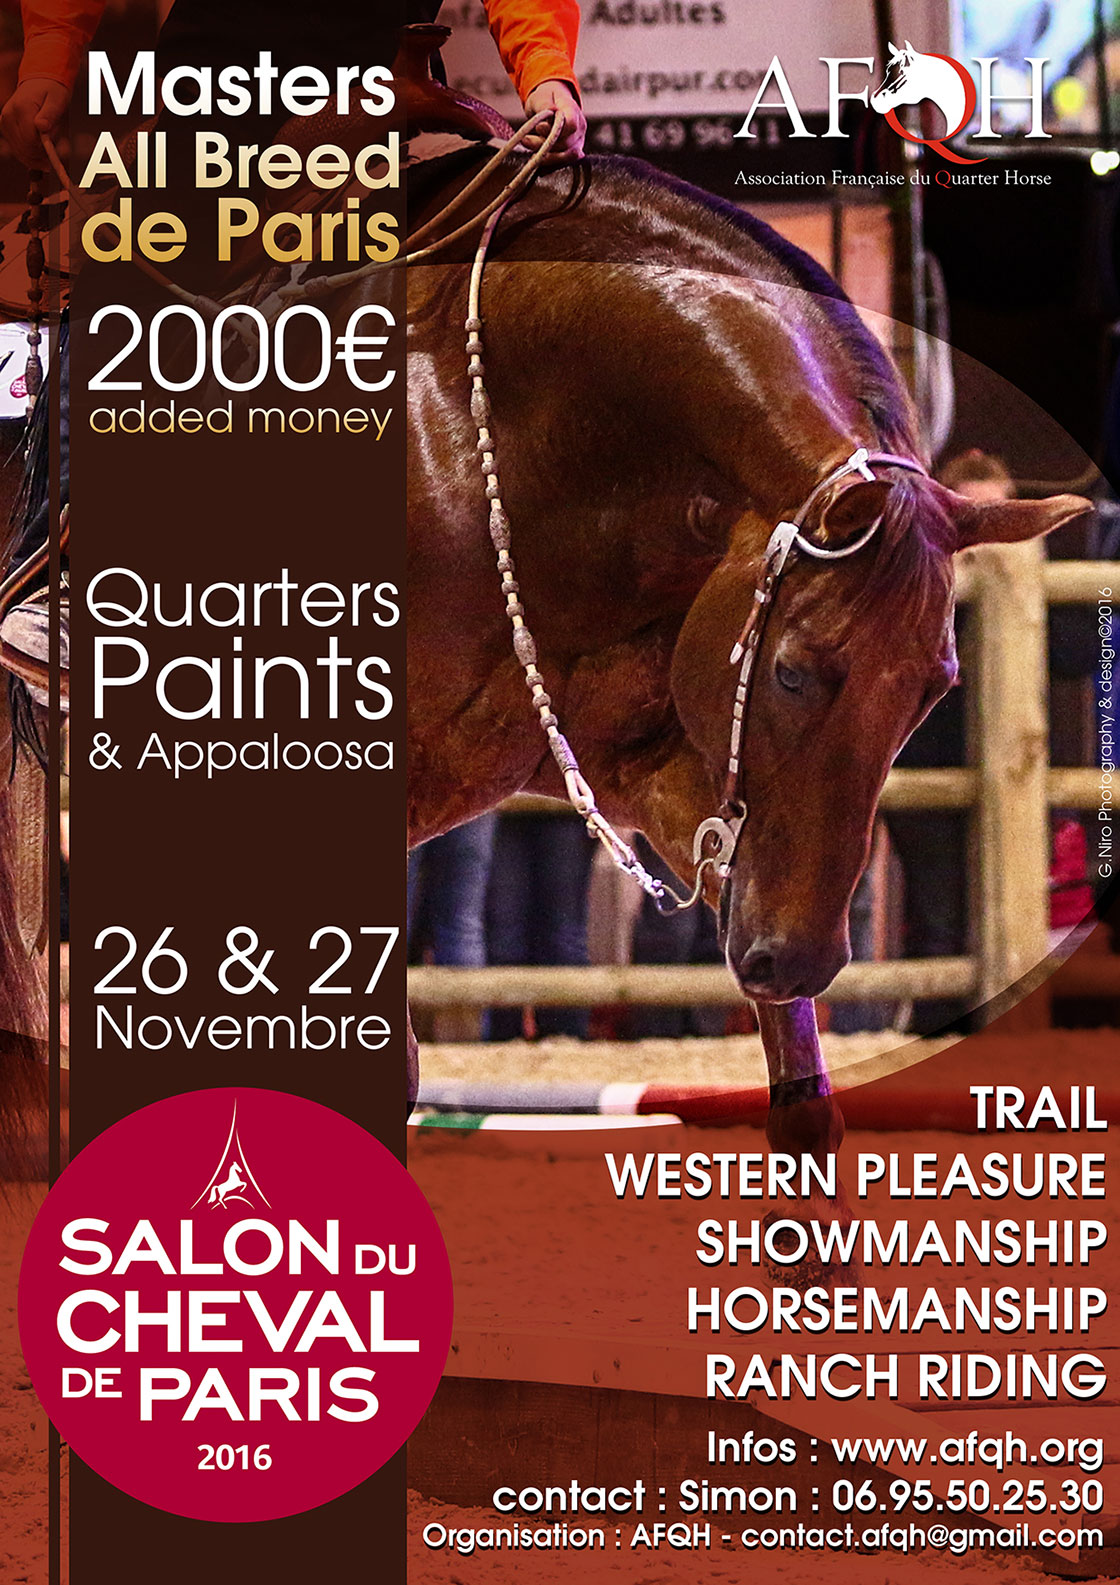 Salon Du Cheval A Paris Afqh Afqh Association Française Du Quarter Horse Page 3